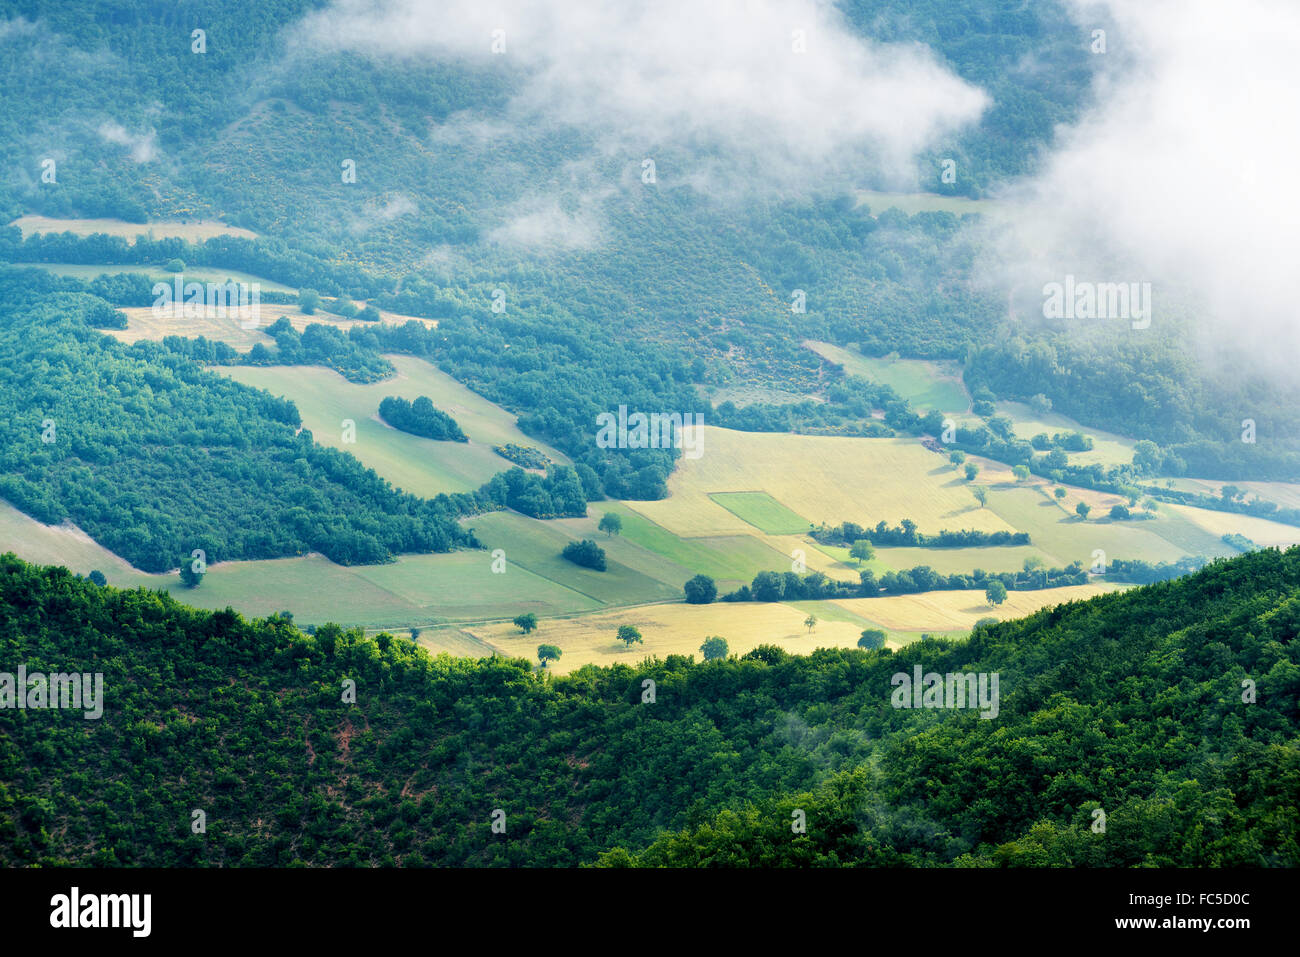 Foggy view of the park Monti Sibillini - Stock Image